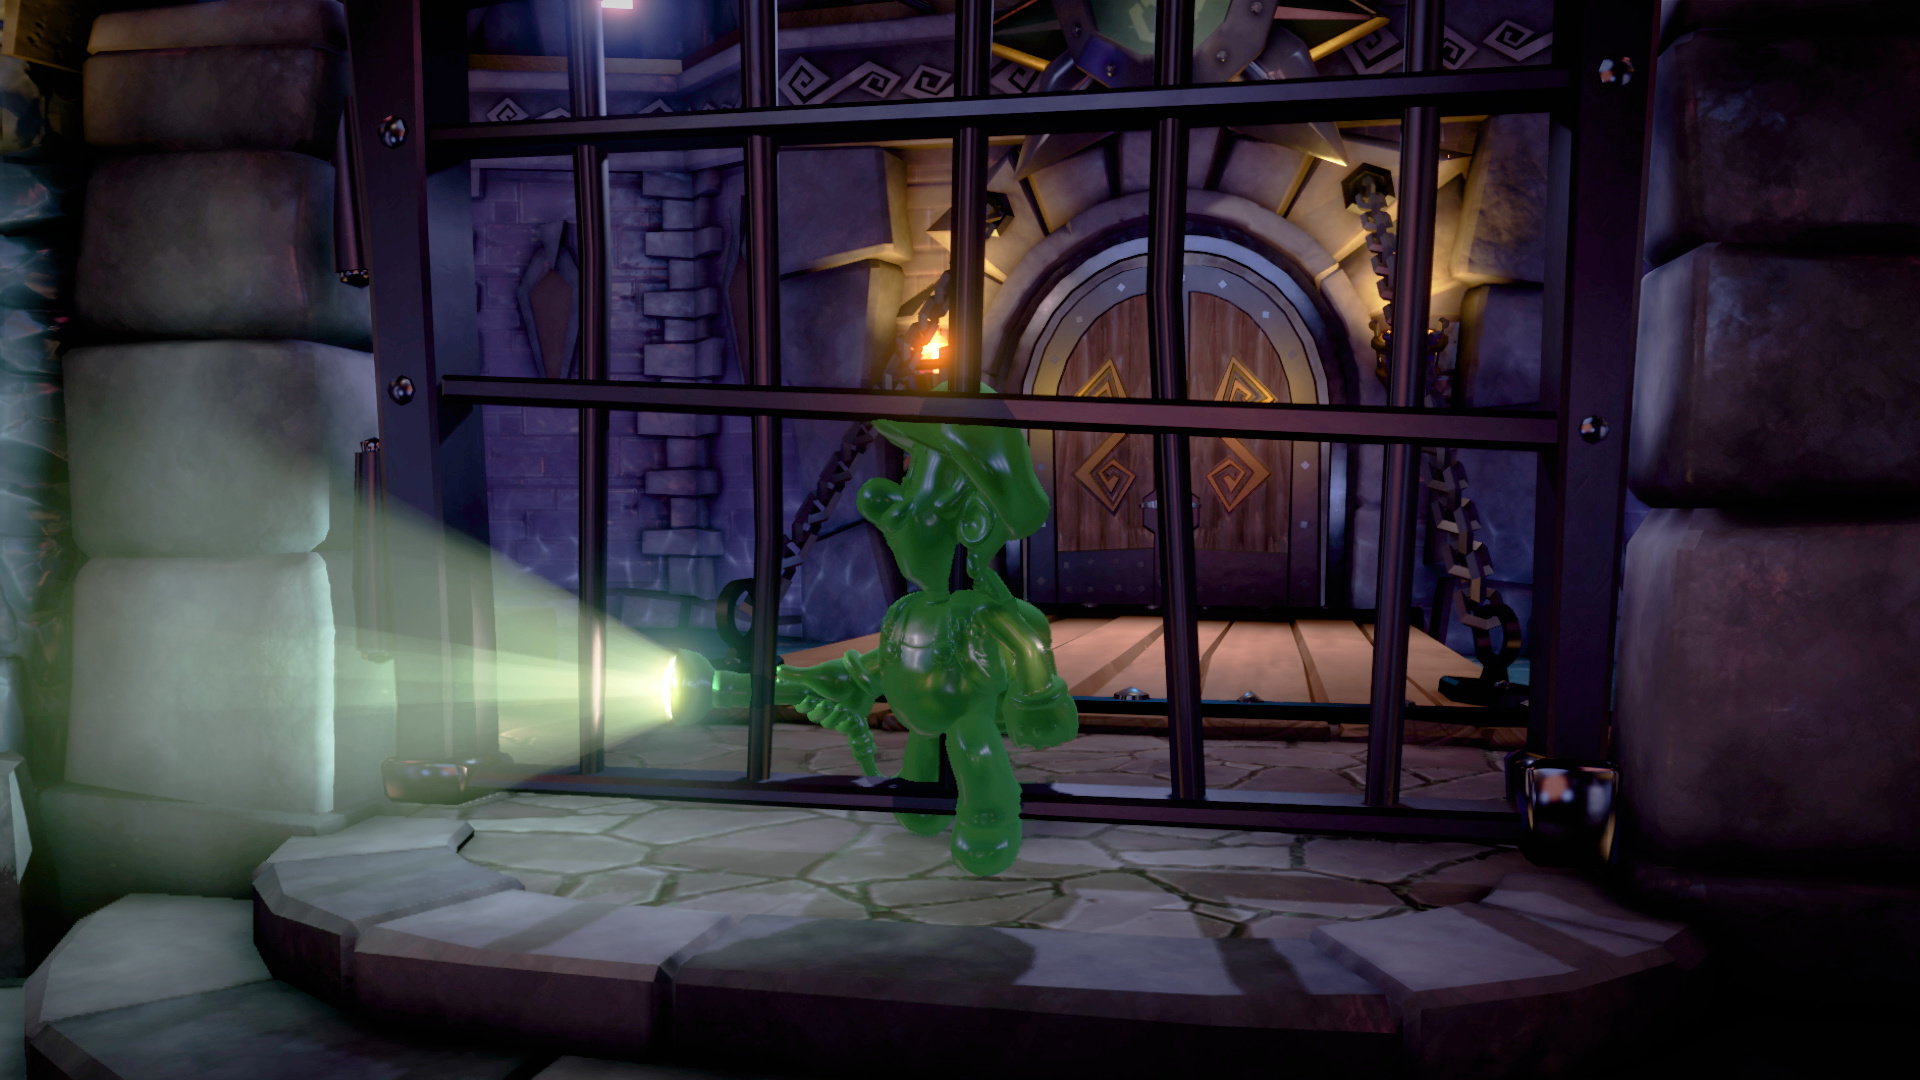 Luigi Mansion 3 Gameplay Features a Large Hotel Structure and Multiplayer